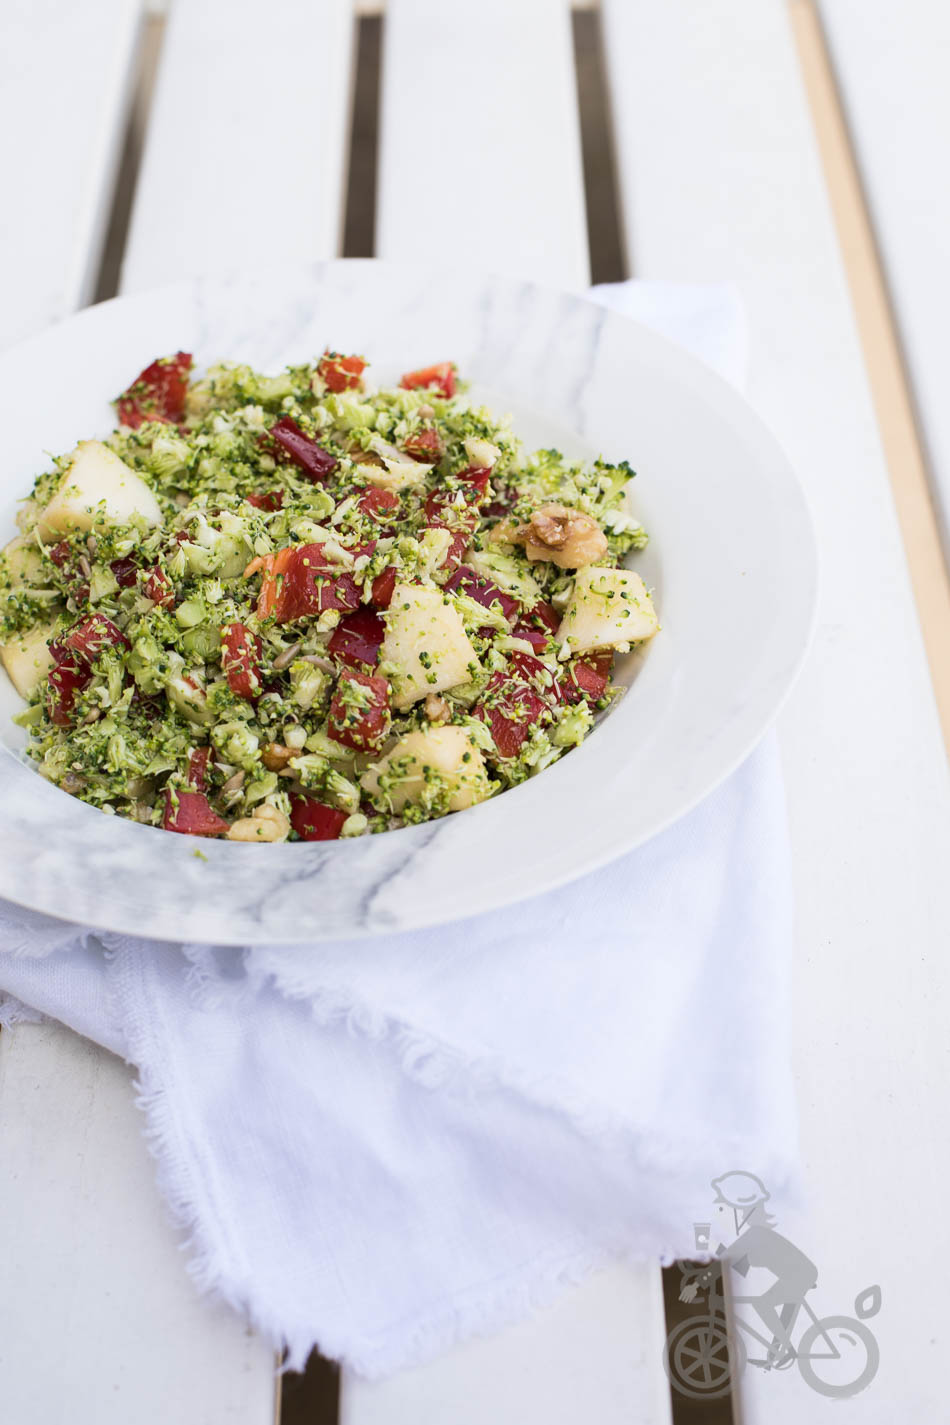 Broccolisalade met appel en paprika | everydayhealthy.nl